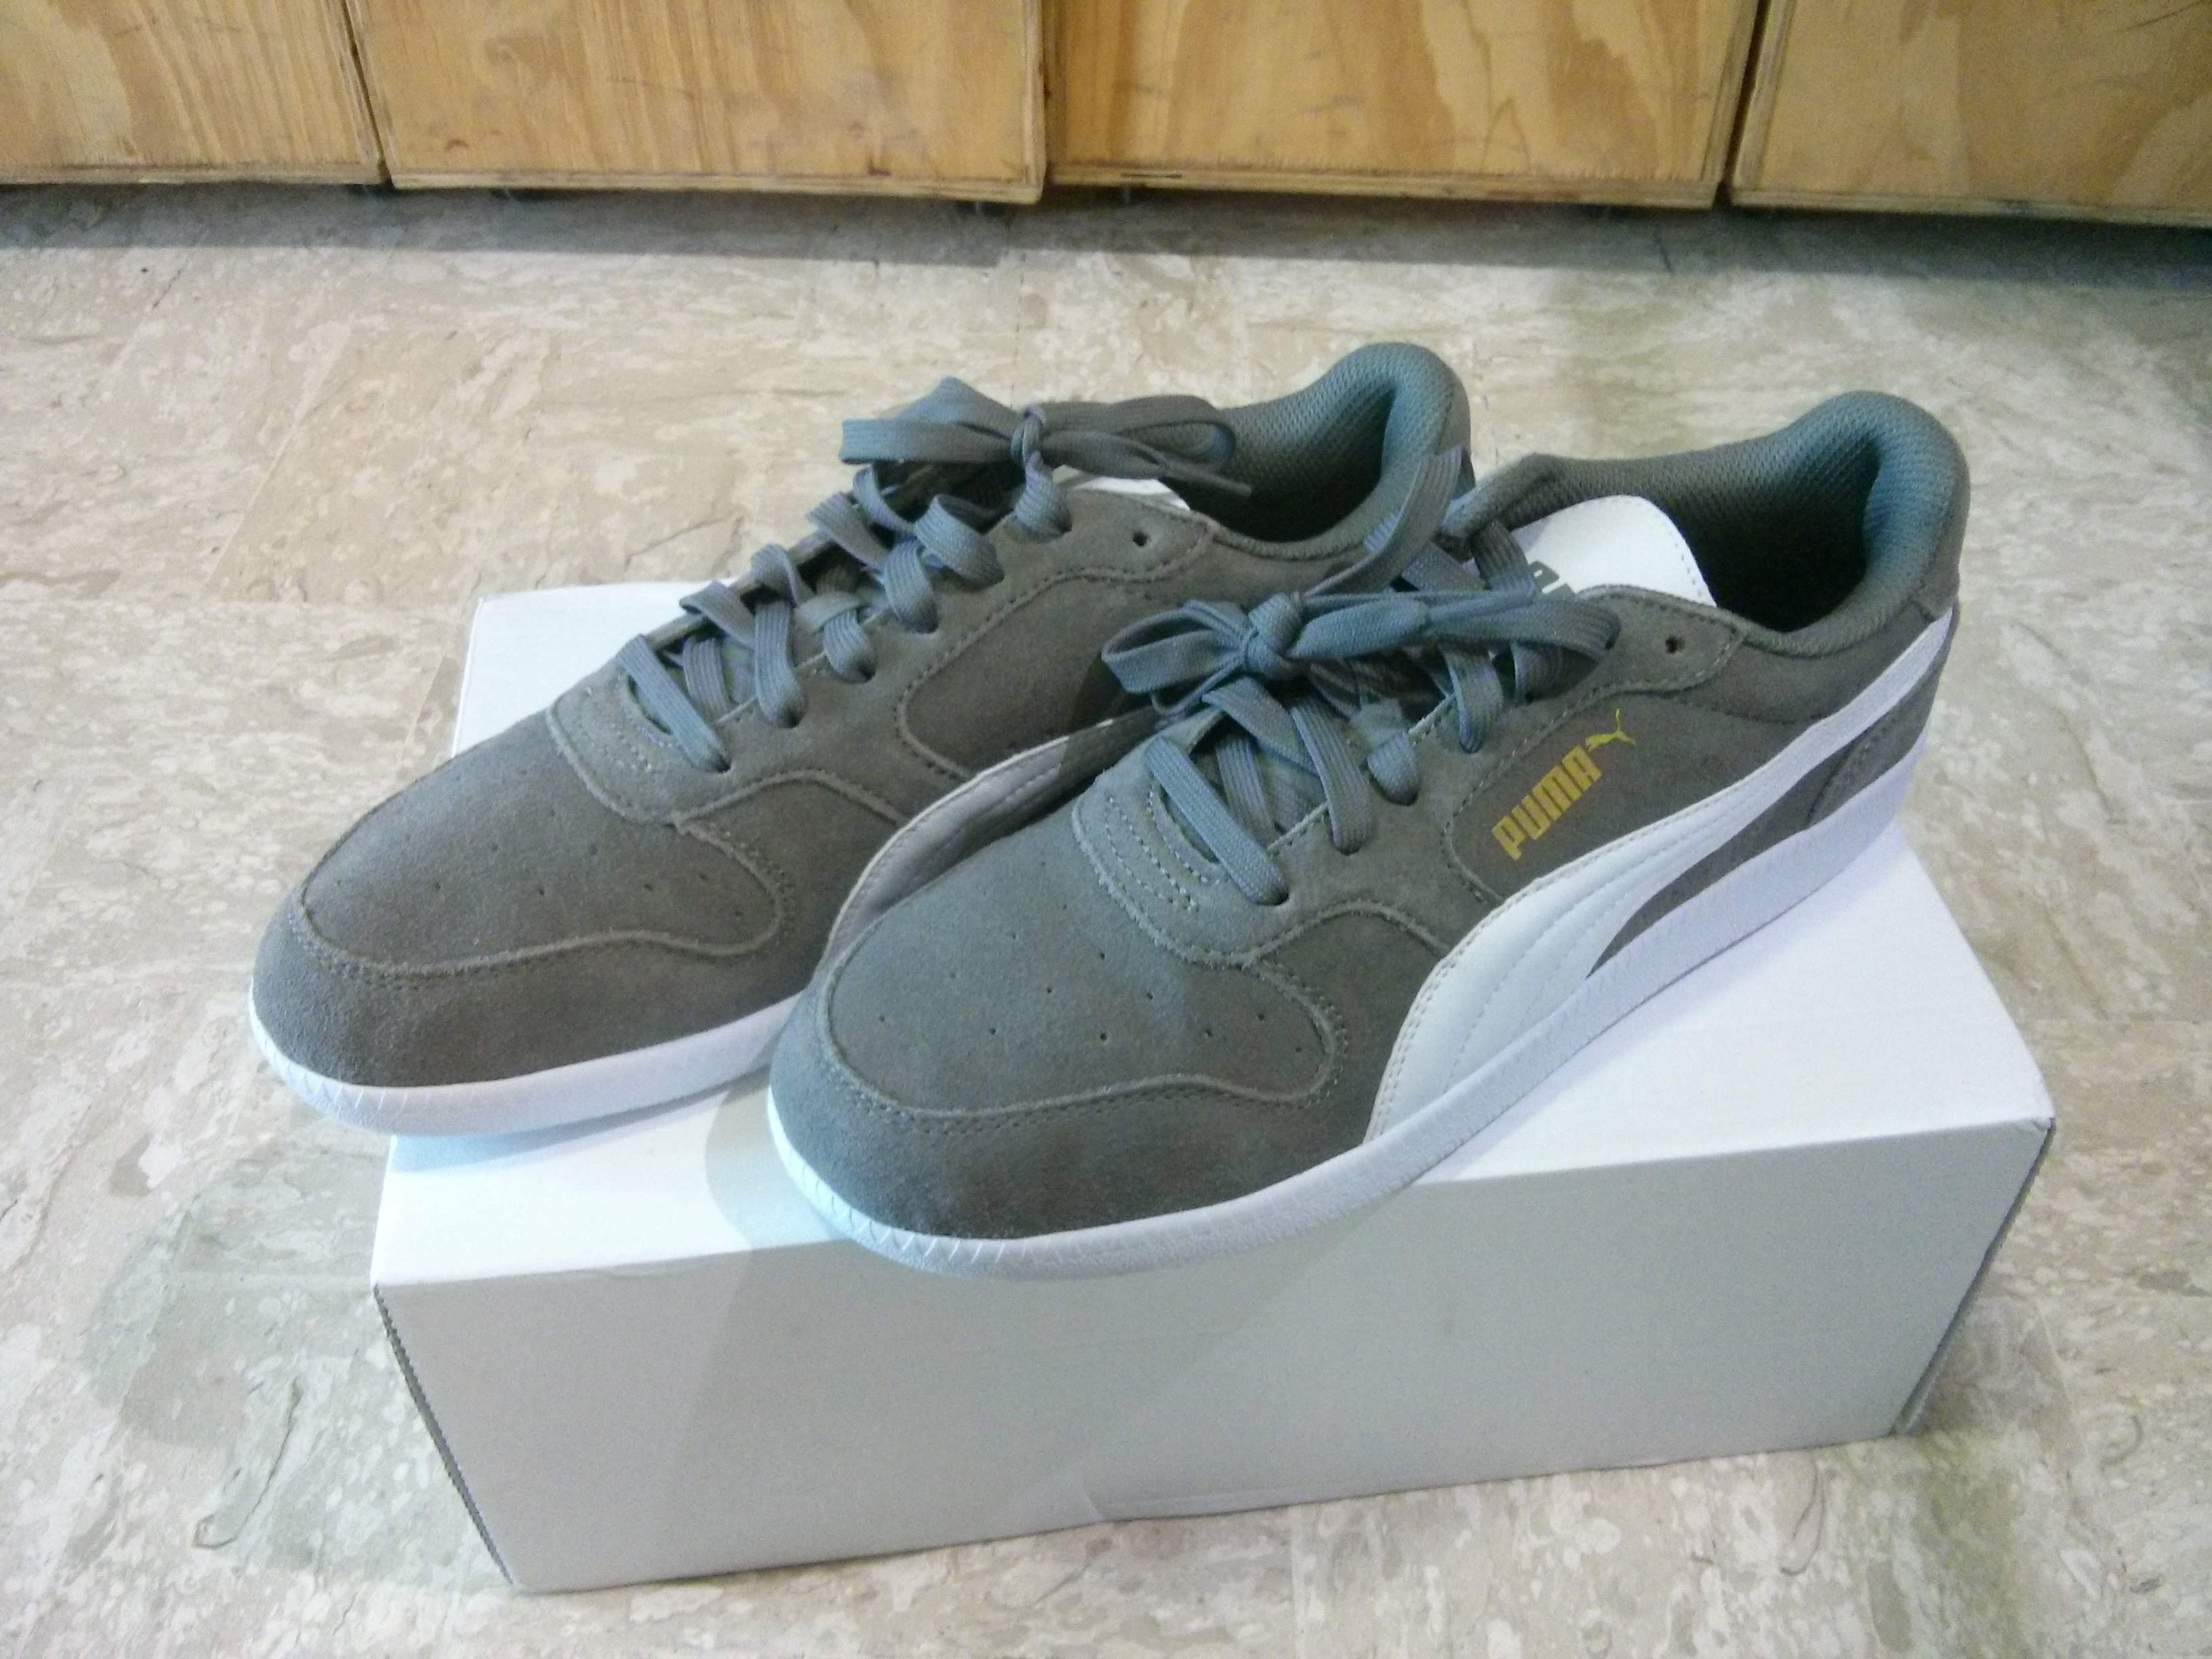 buy online a2910 07422 – Puma Icra Scarpe Sd Recensioni Trainer Awg7pwqUx